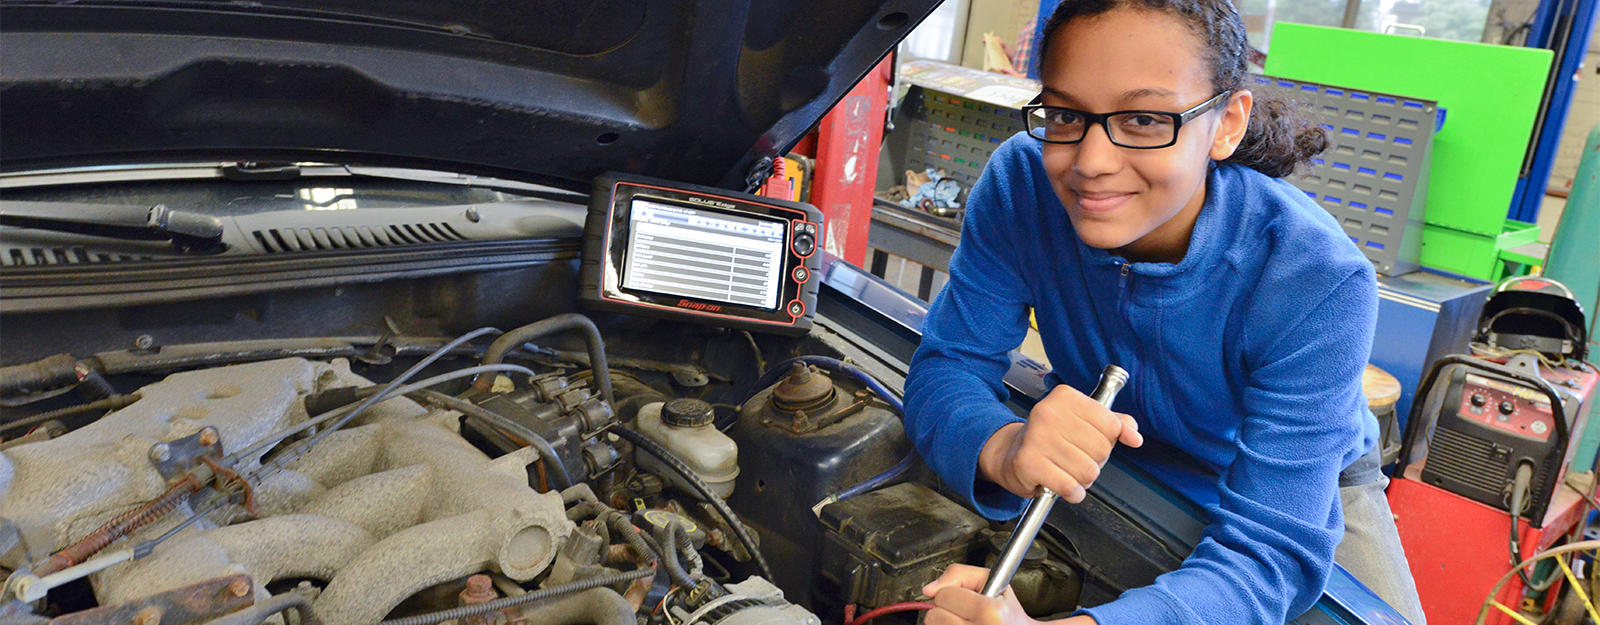 Student working on the engine of a car.